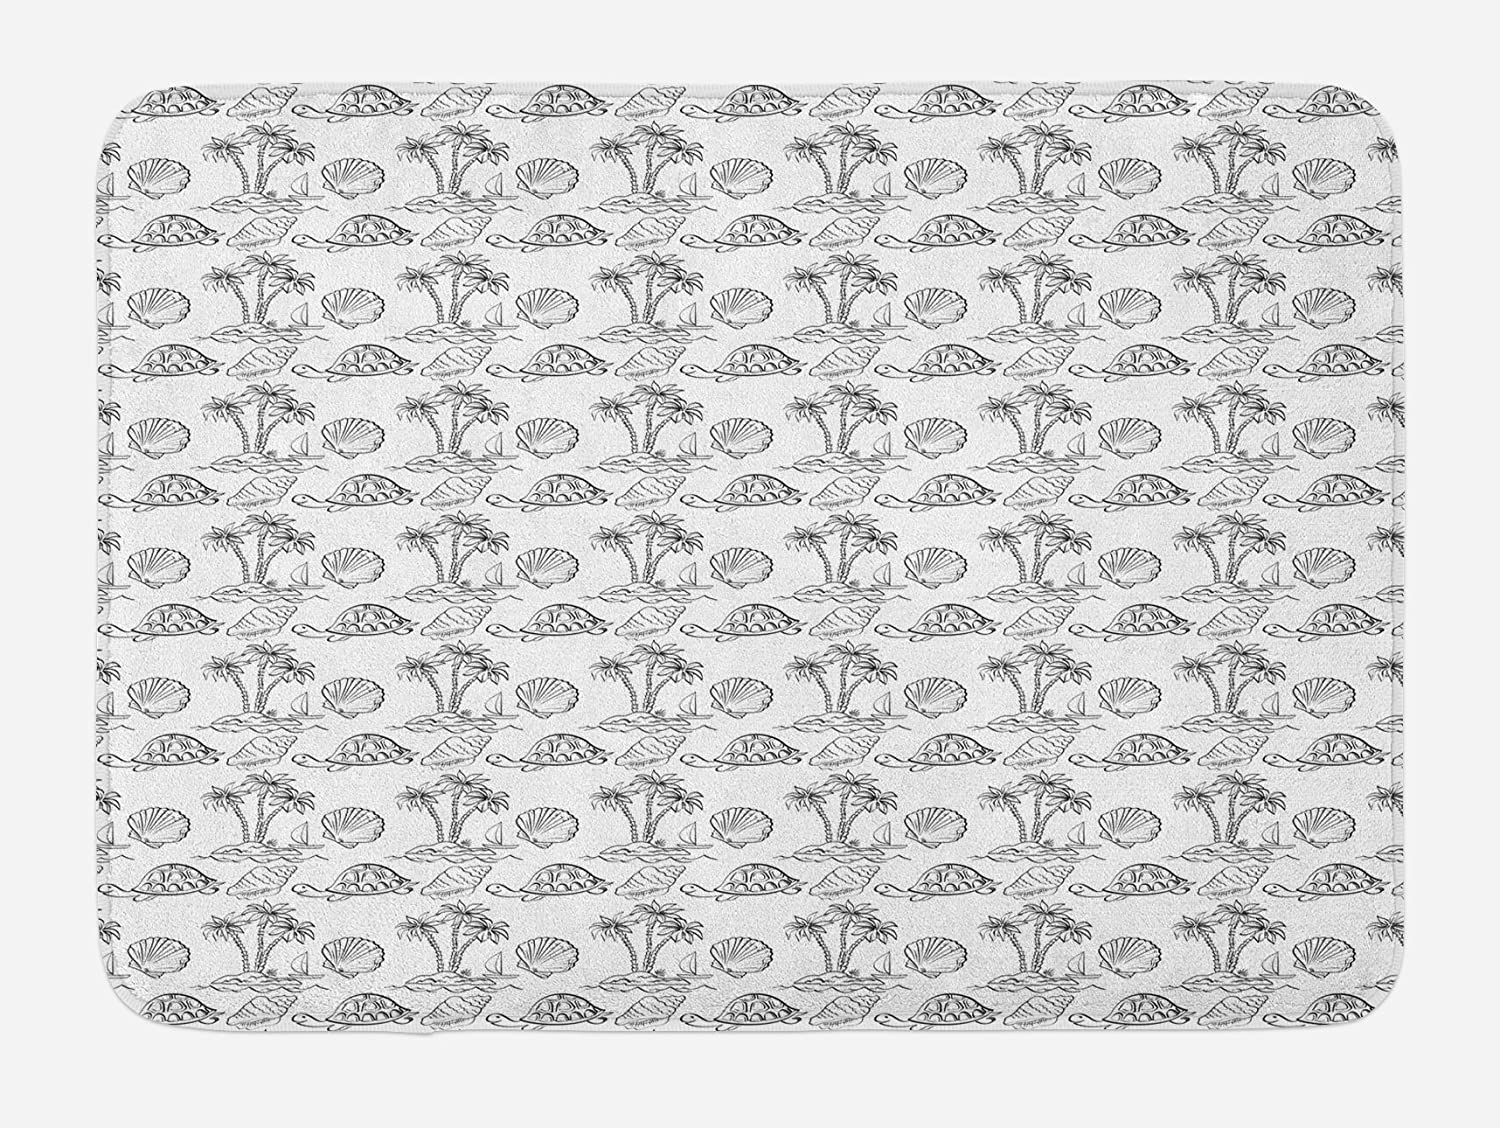 Lunarable Sketch Bath Mat, Sea Island with Palm Trees Boat Turtles Shells Hawaiian Ecology Turtles Scallops, Plush Bathroom Decor Mat with Non Slip Backing, 29.5